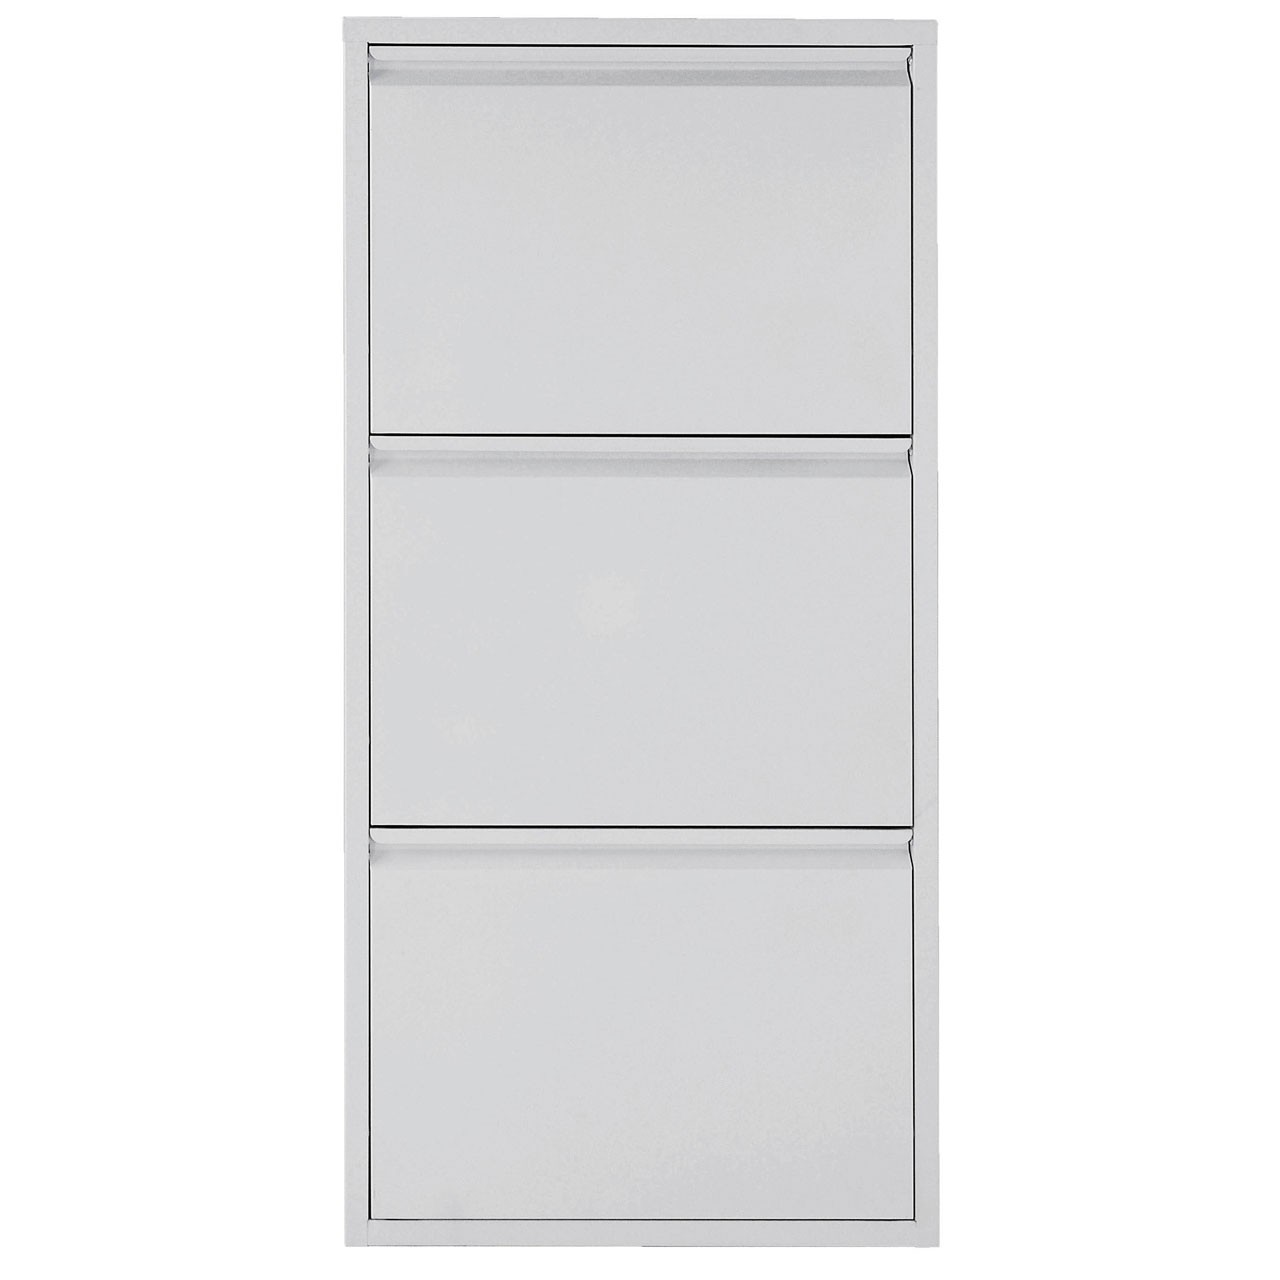 3 Drawer Metal Shoe Cabinet White